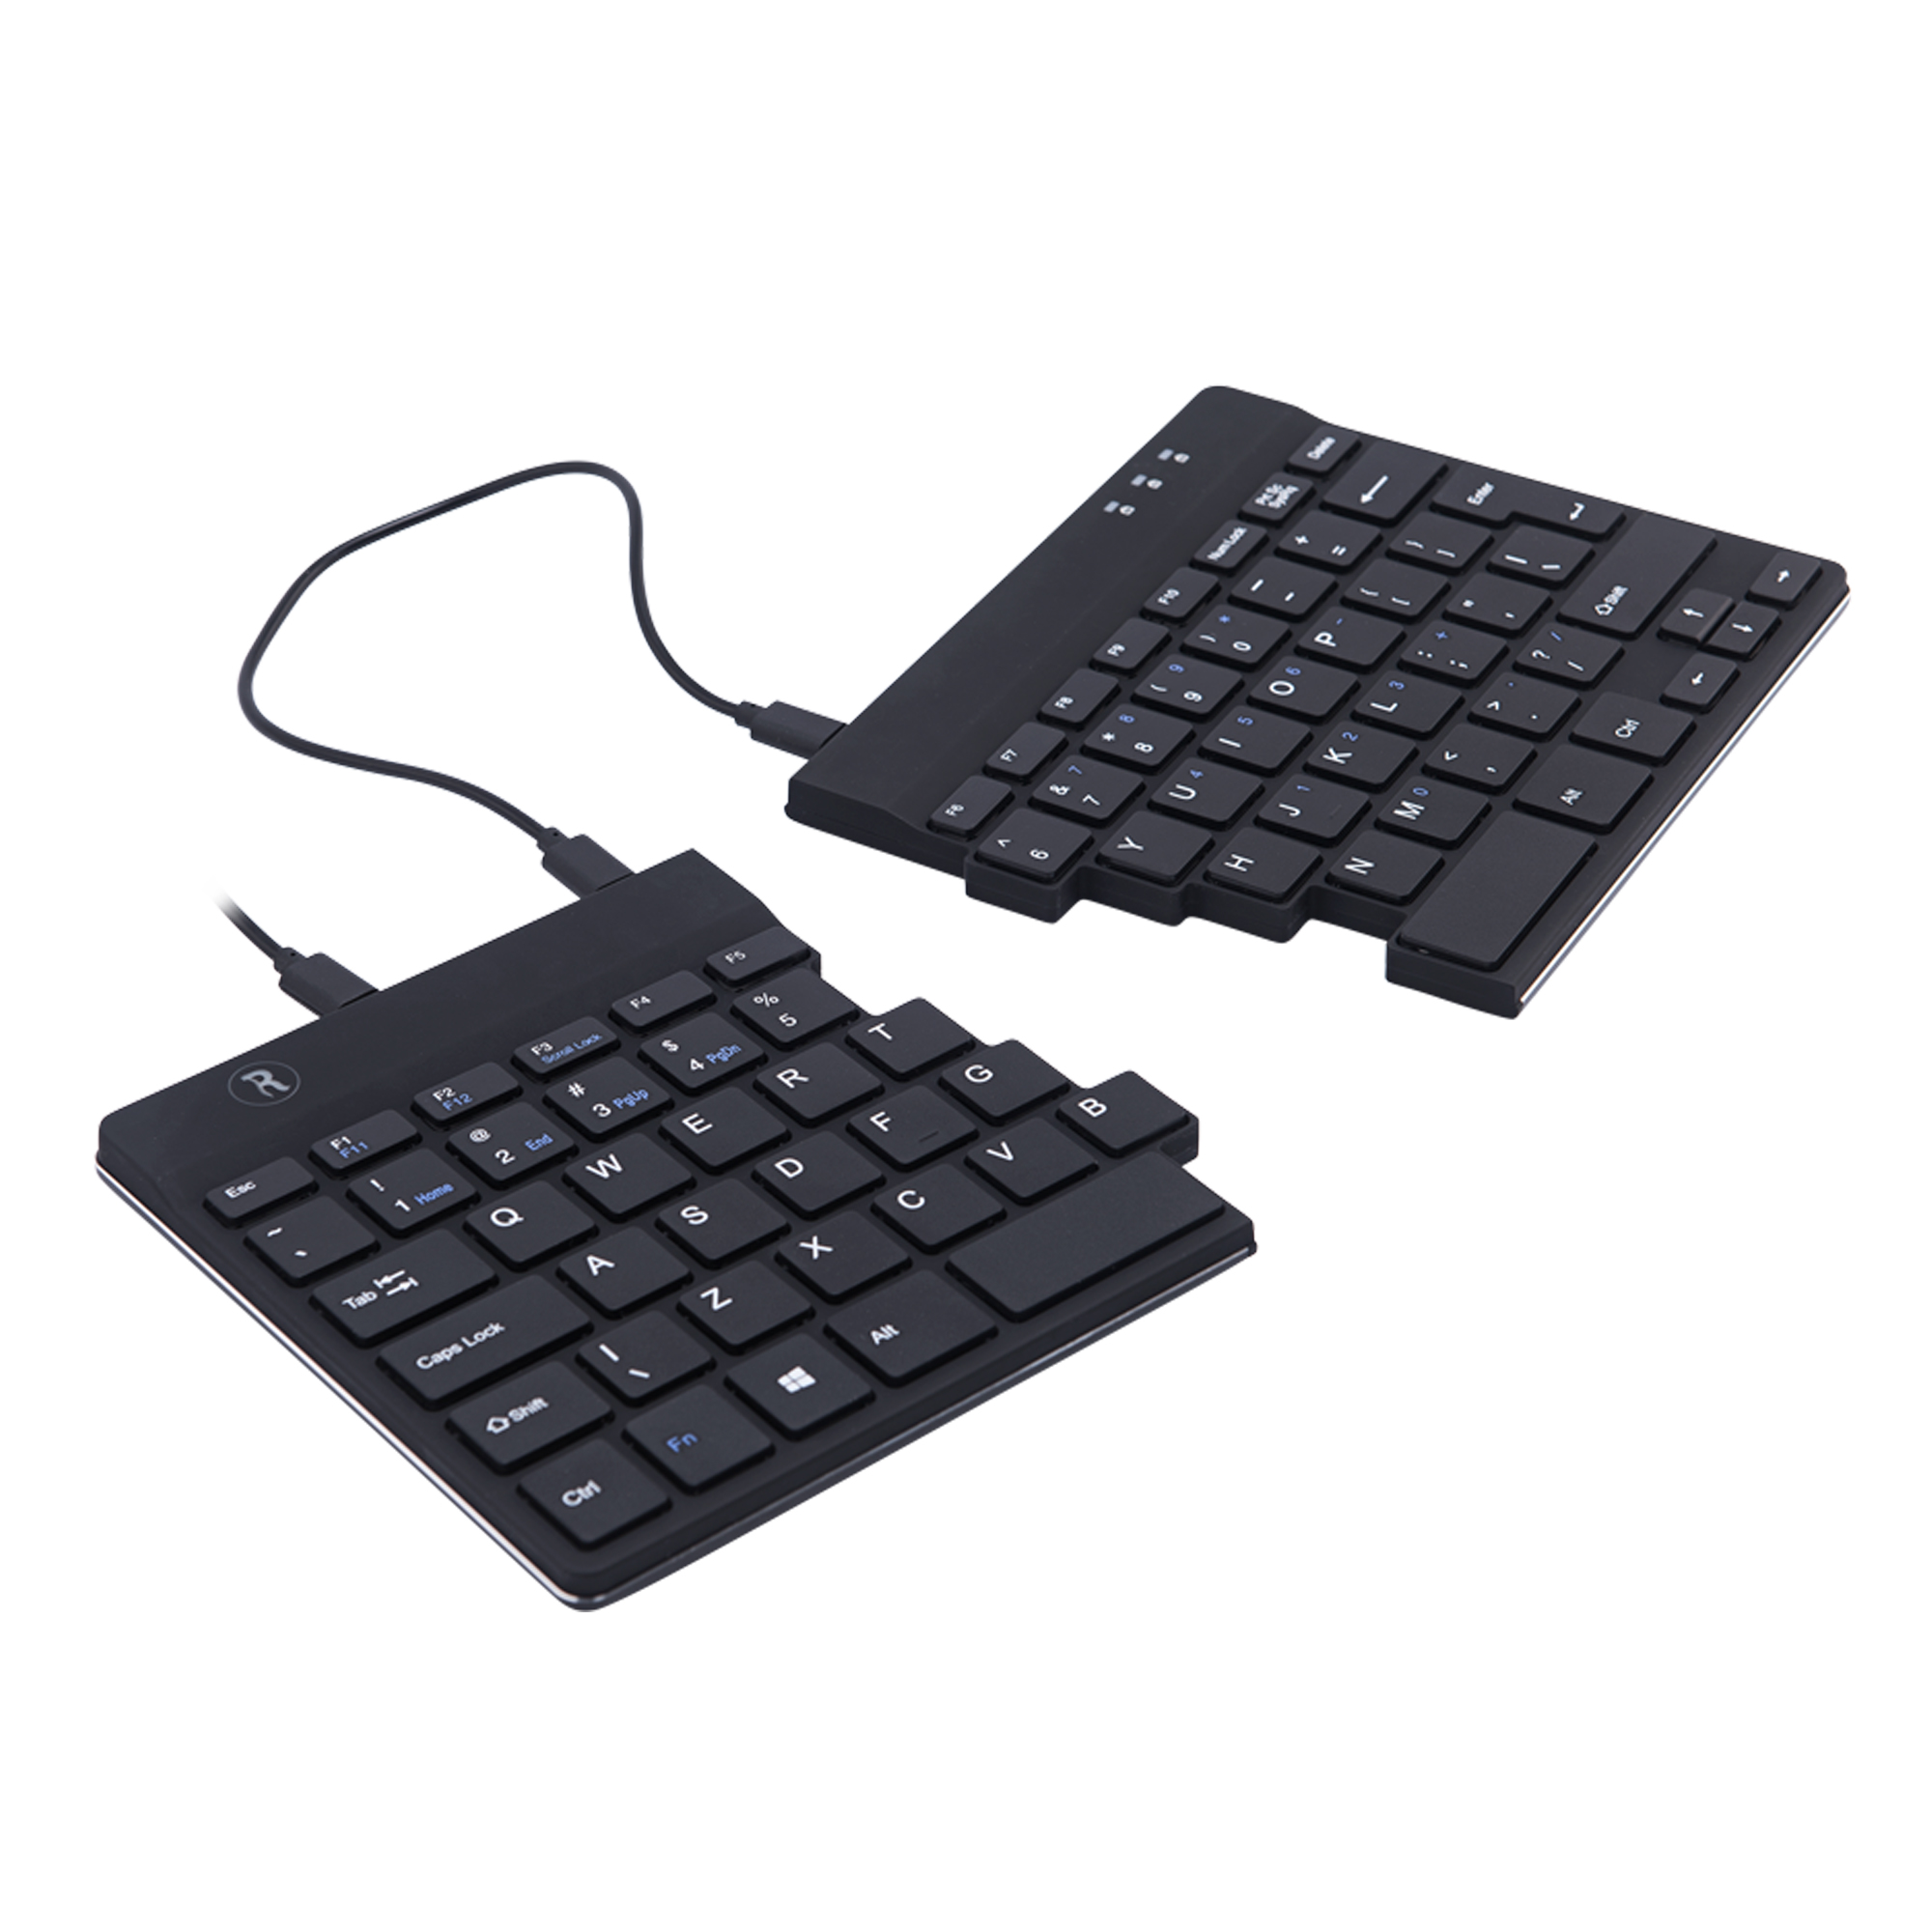 R-Go Split Break Ergonomic Keyboard, QWERTY (US), black, wired - 4